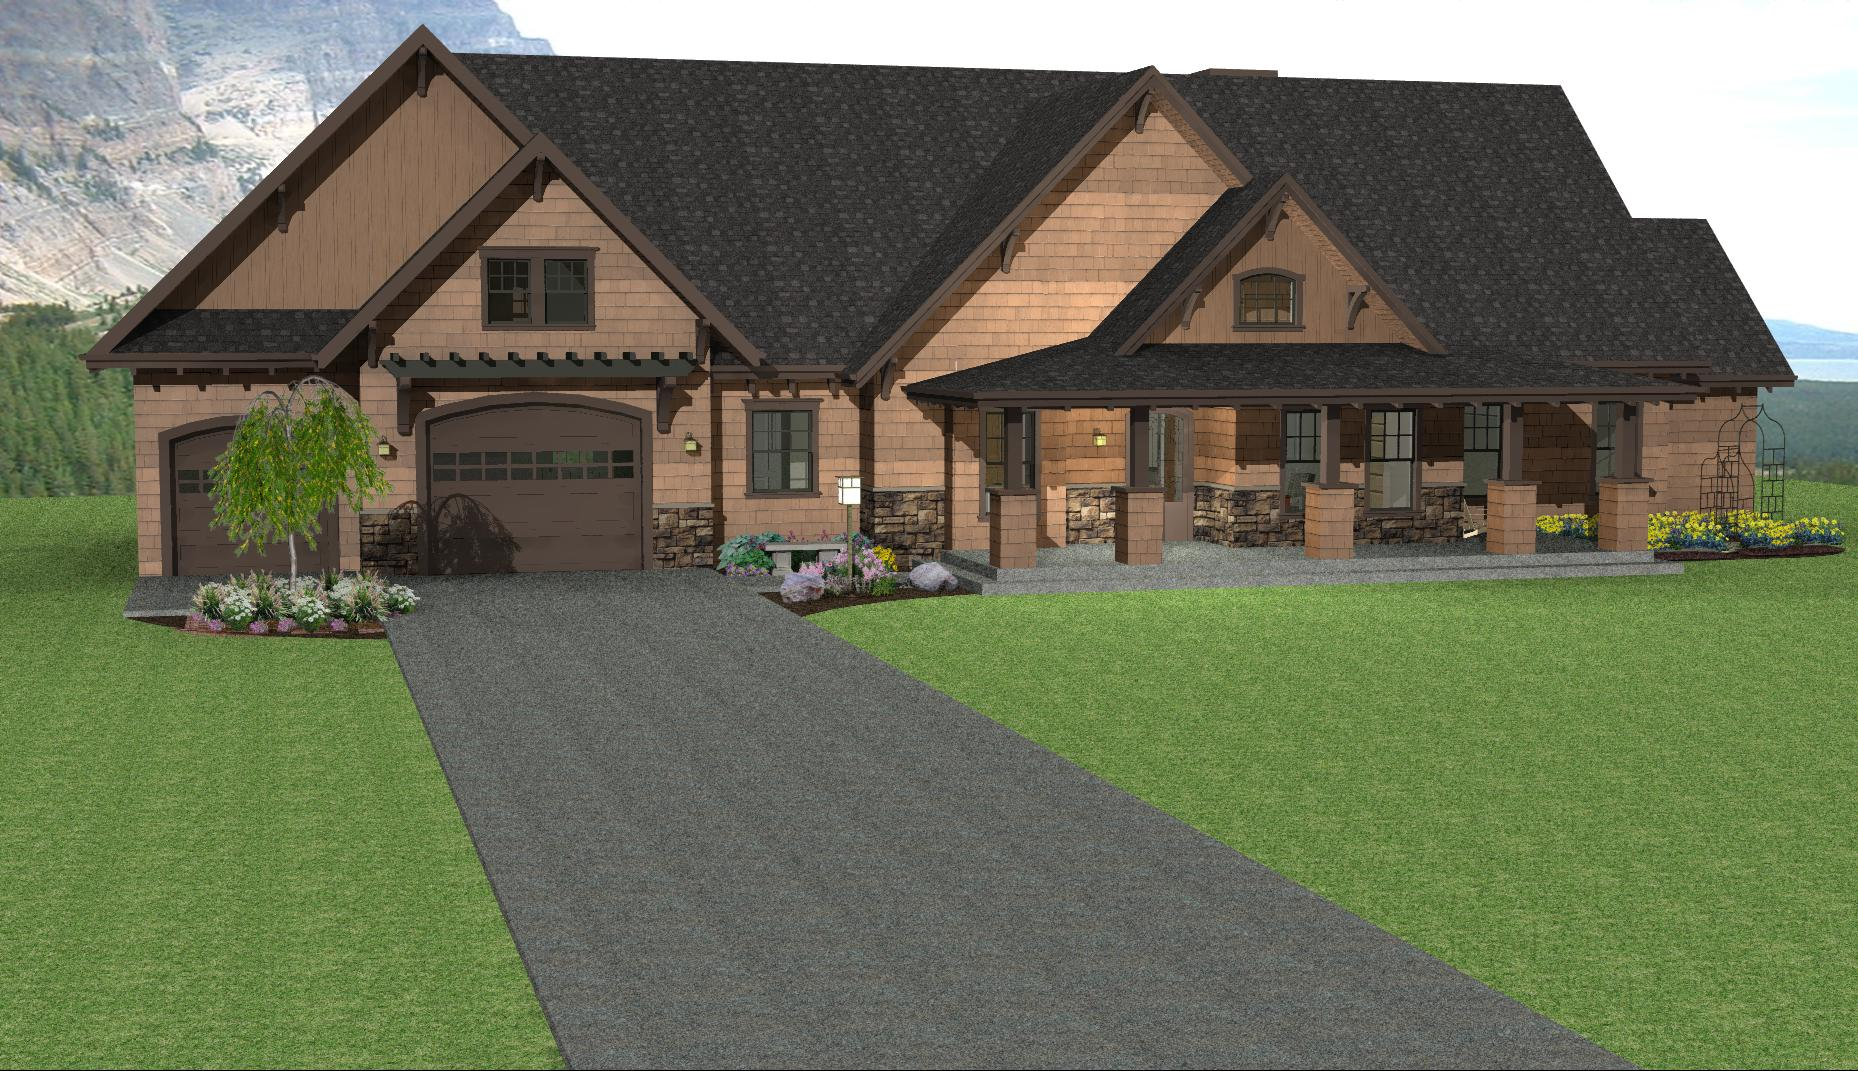 Ranch style home designs find house plans Ranch home plans